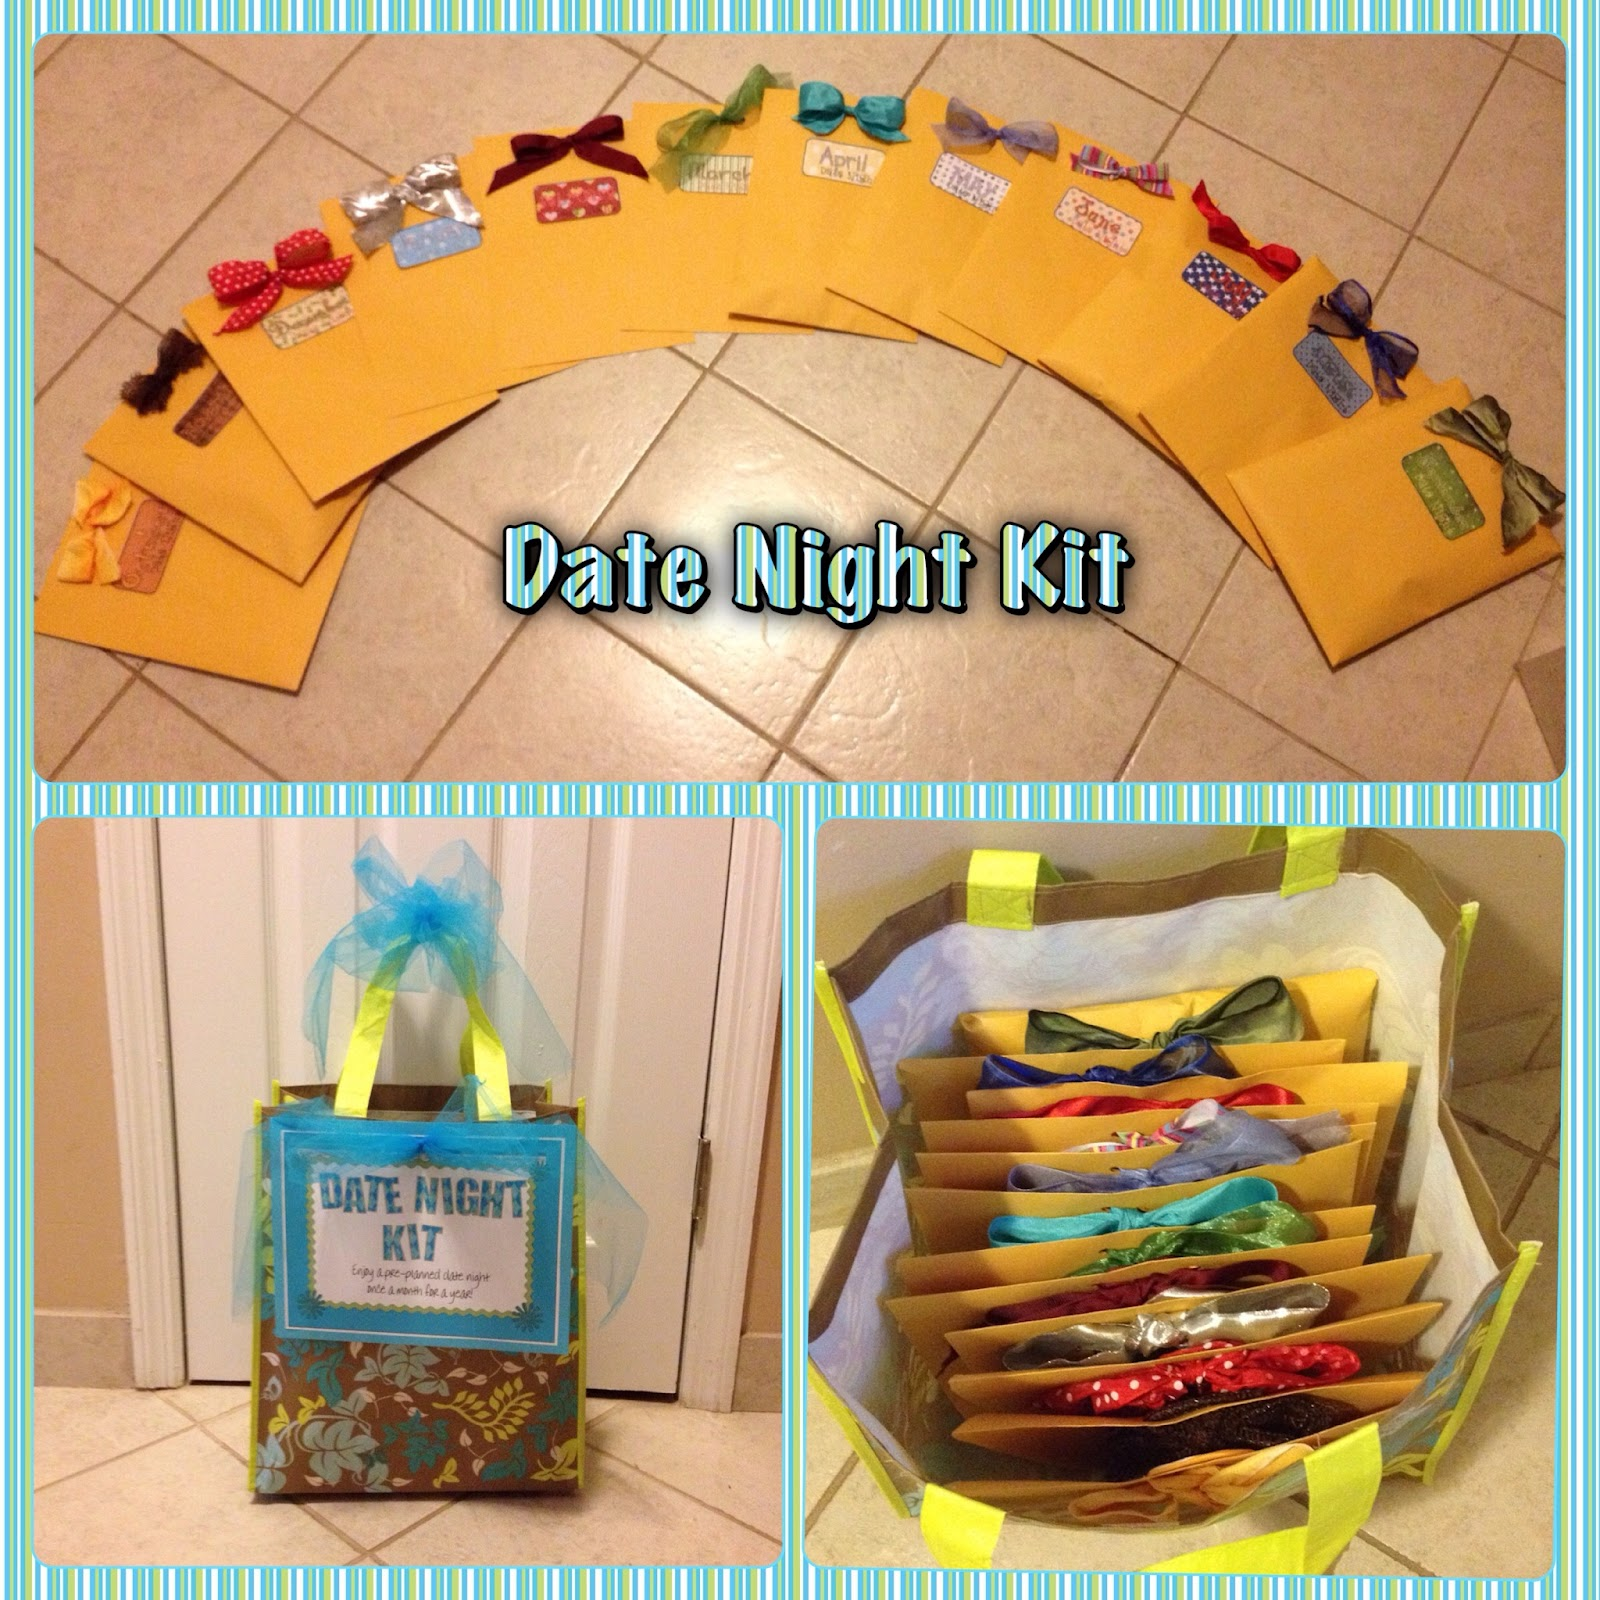 Wedding Night Basket Ideas: Parties4Ever: Date Night Kit